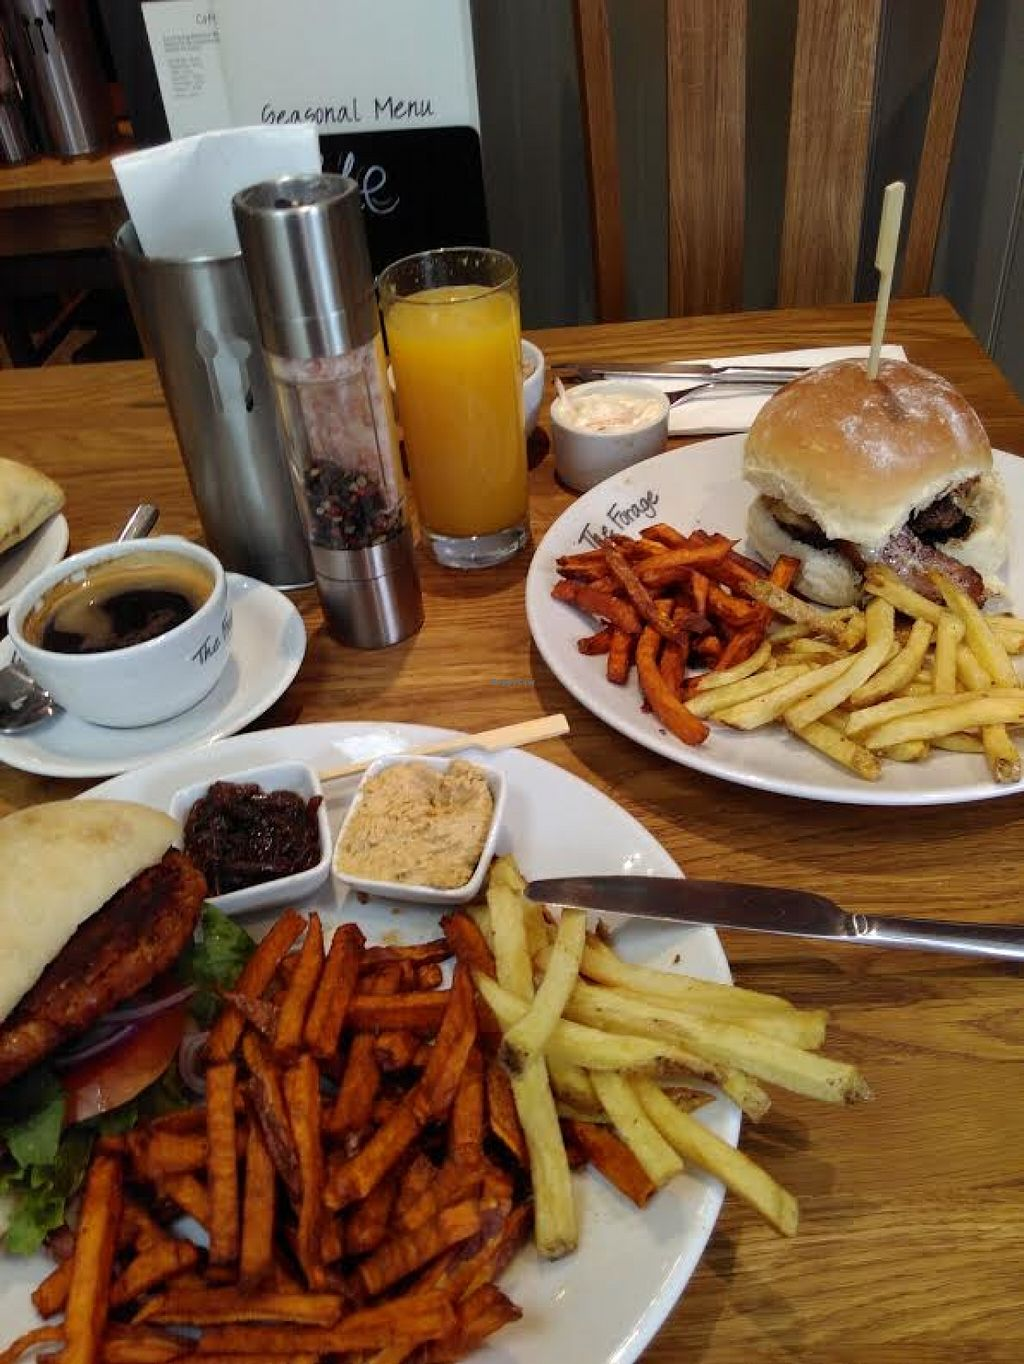 """Photo of The Forage  by <a href=""""/members/profile/starcide"""">starcide</a> <br/>Vegan option bean burger is in the lower left <br/> June 9, 2016  - <a href='/contact/abuse/image/74543/153054'>Report</a>"""